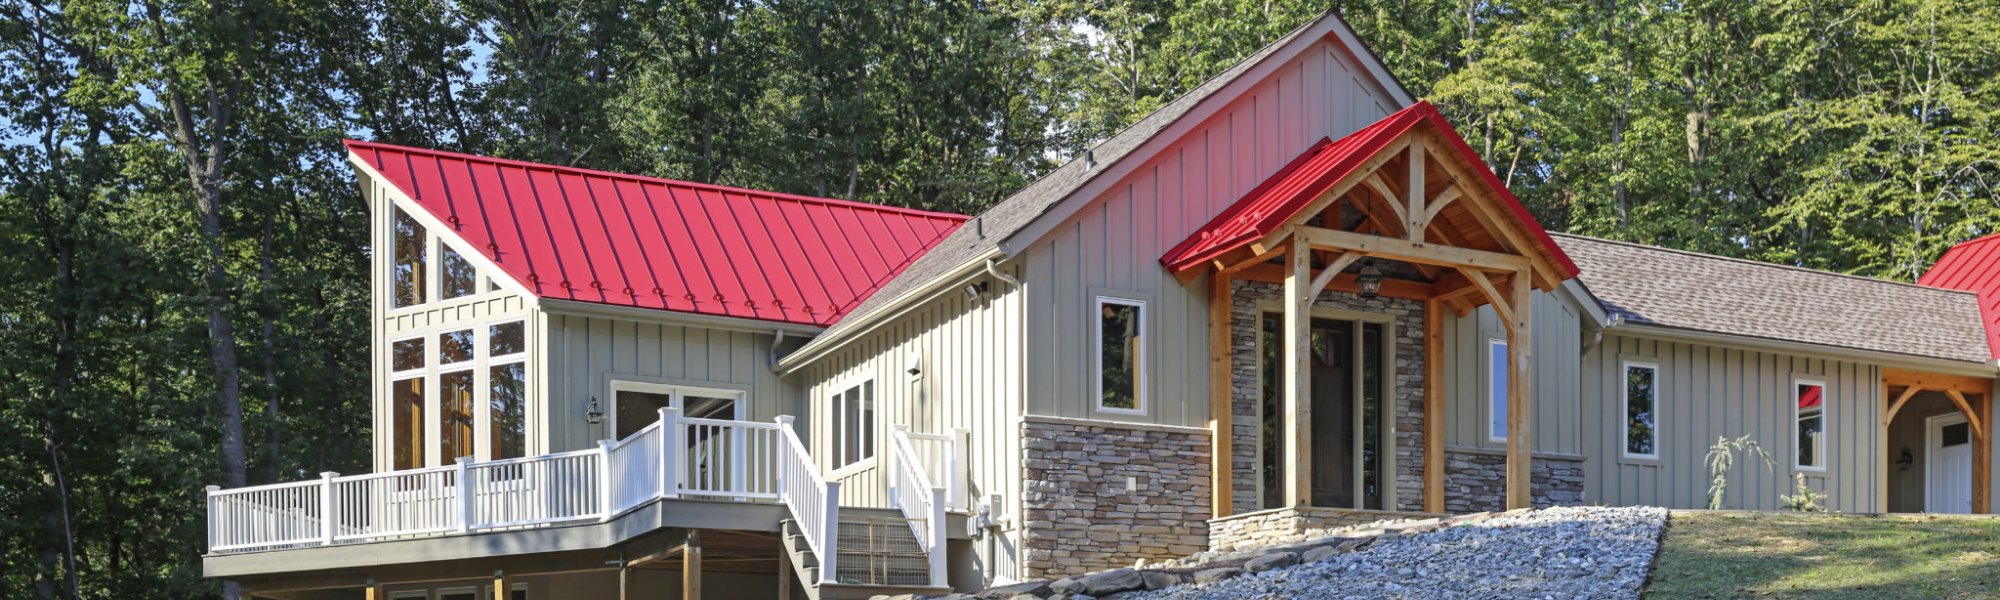 Is a Timber Frame Home in Your Budget?